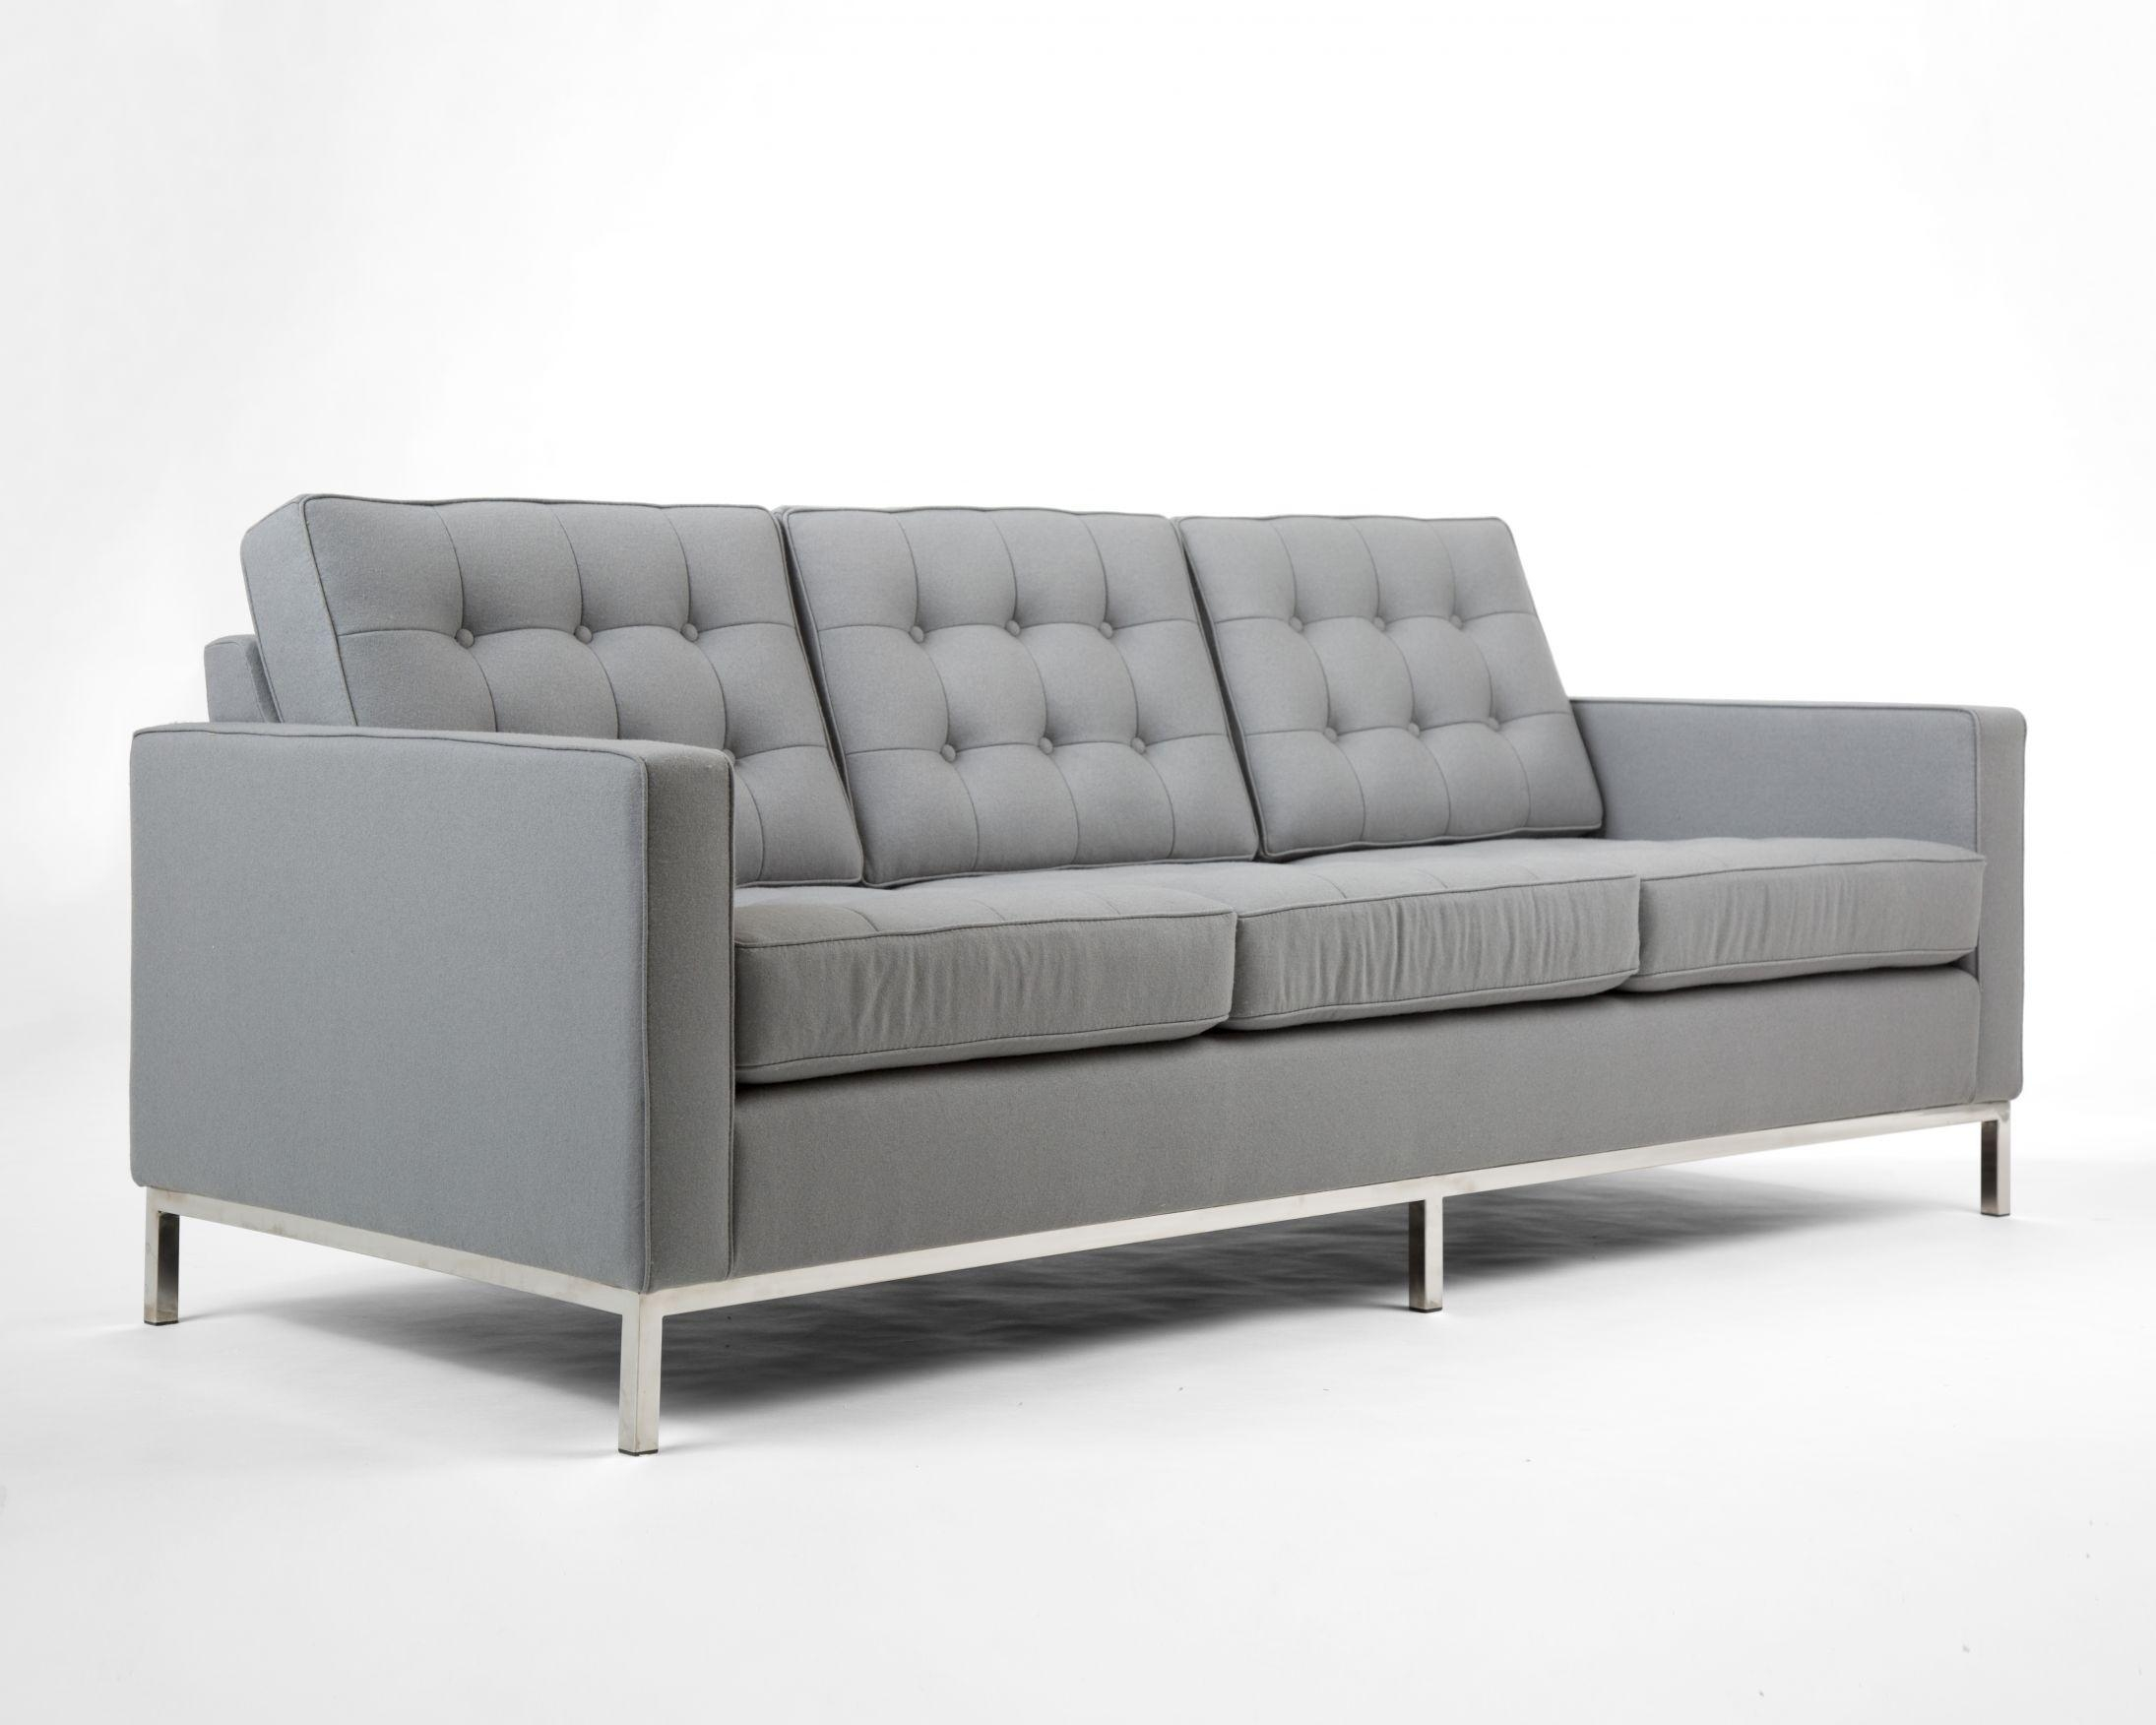 Florence Sofa | Reproduction | Mid Century Modern Throughout Florence Large Sofas (Image 6 of 20)